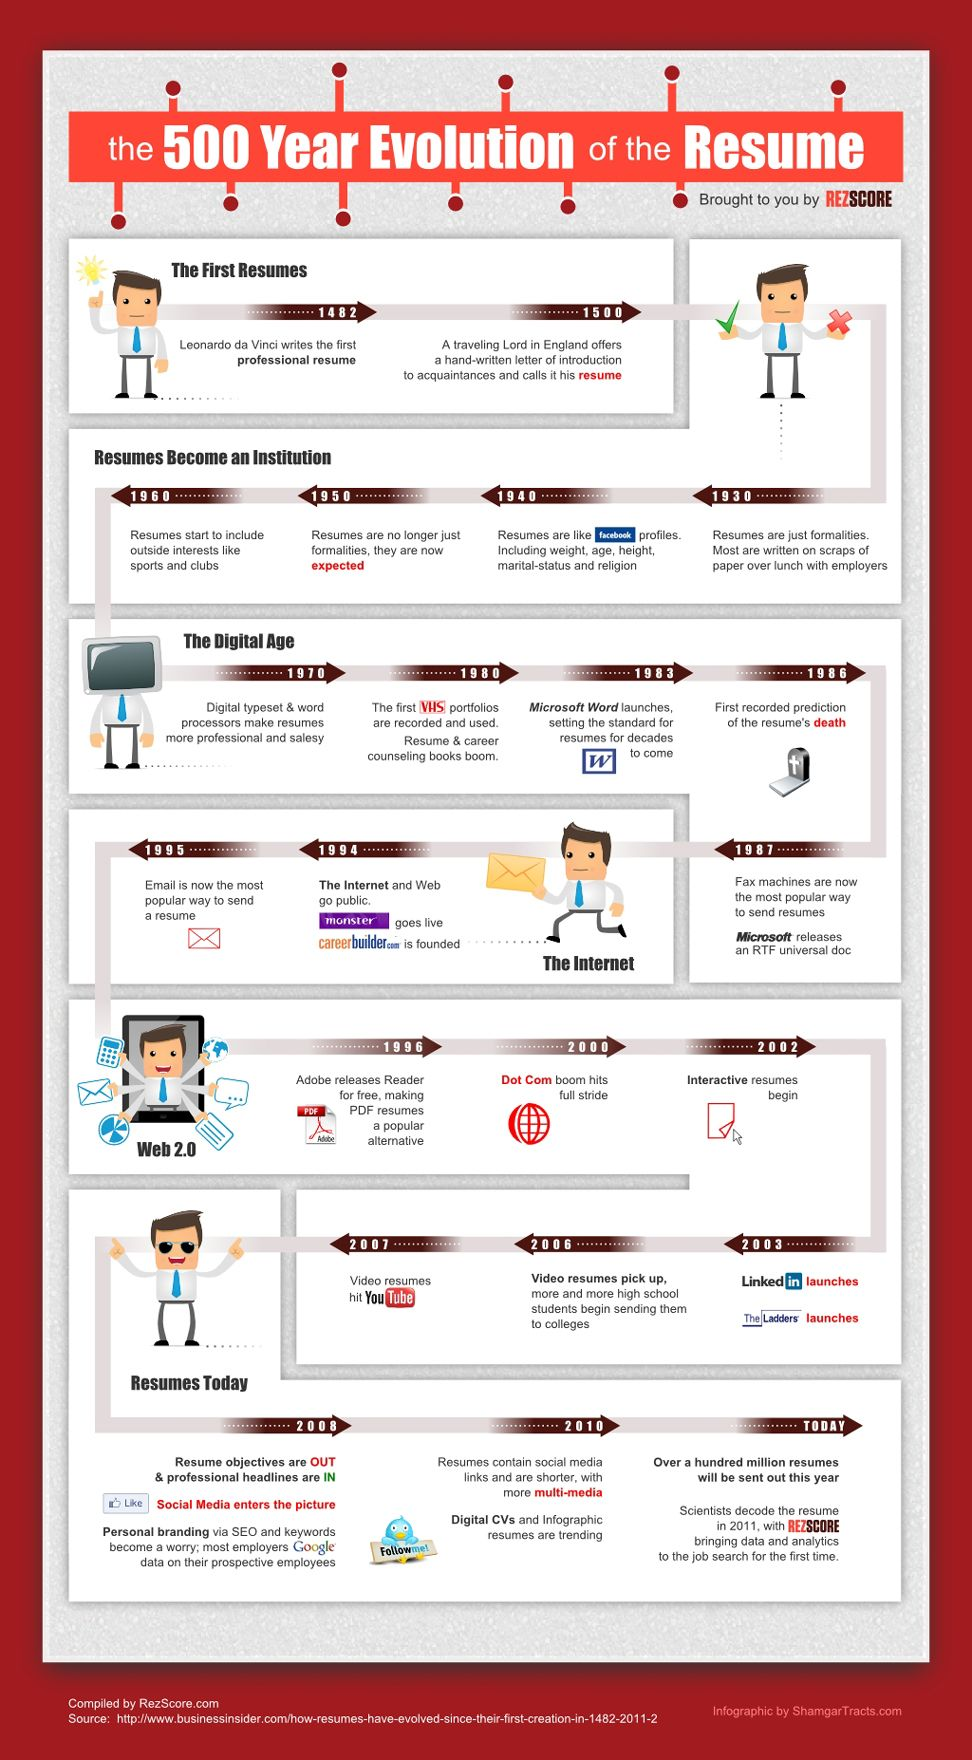 The Modern History of the Resume [INFOGRAPHIC] | Modern history ...